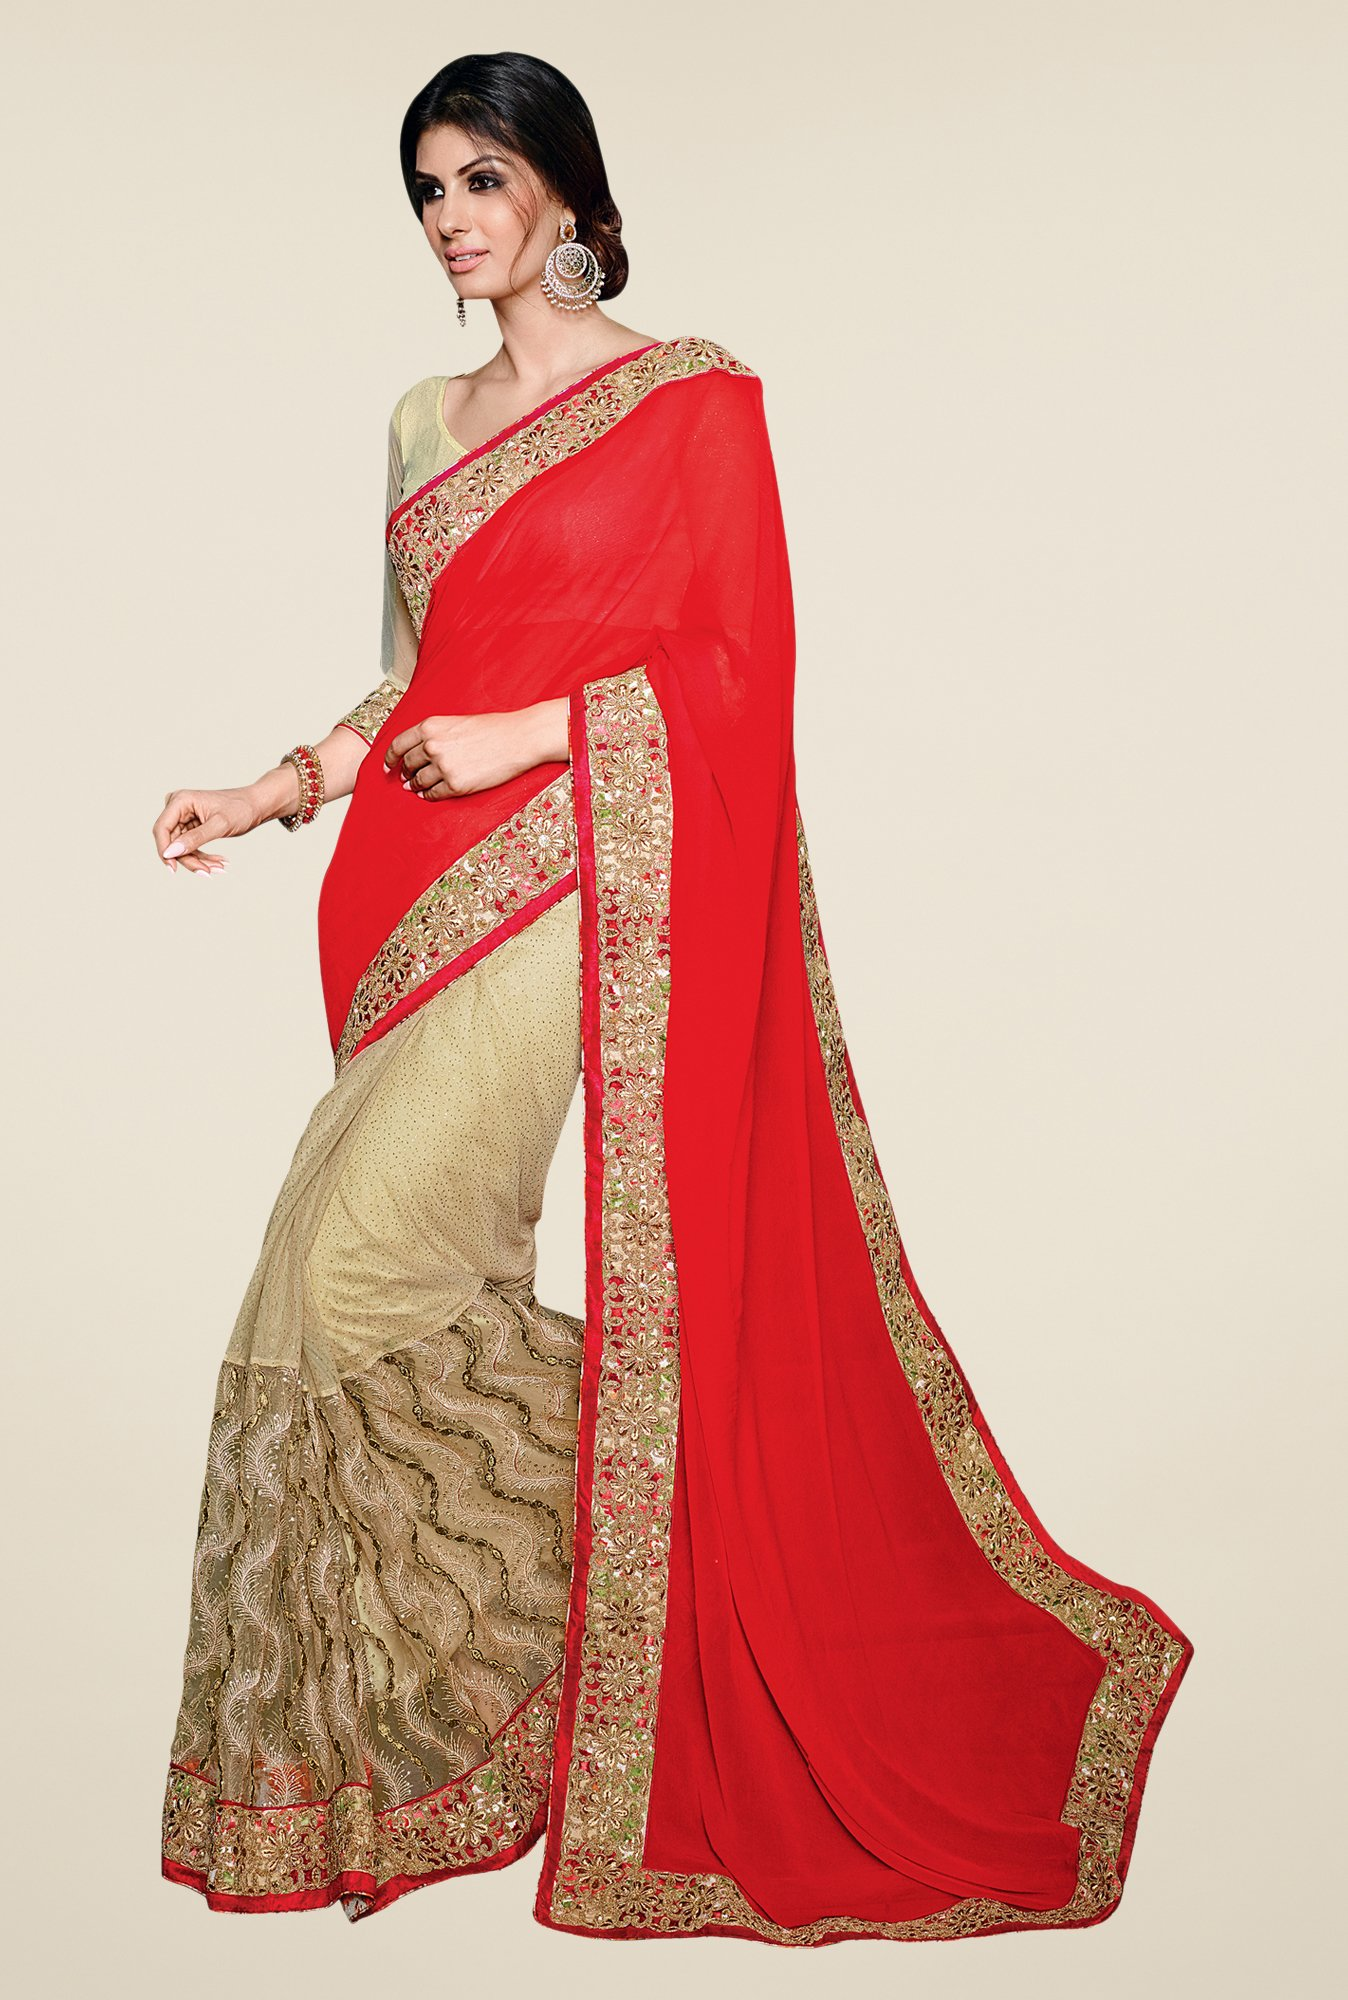 Shonaya Red & Beige Net & Georgette Embellished Saree